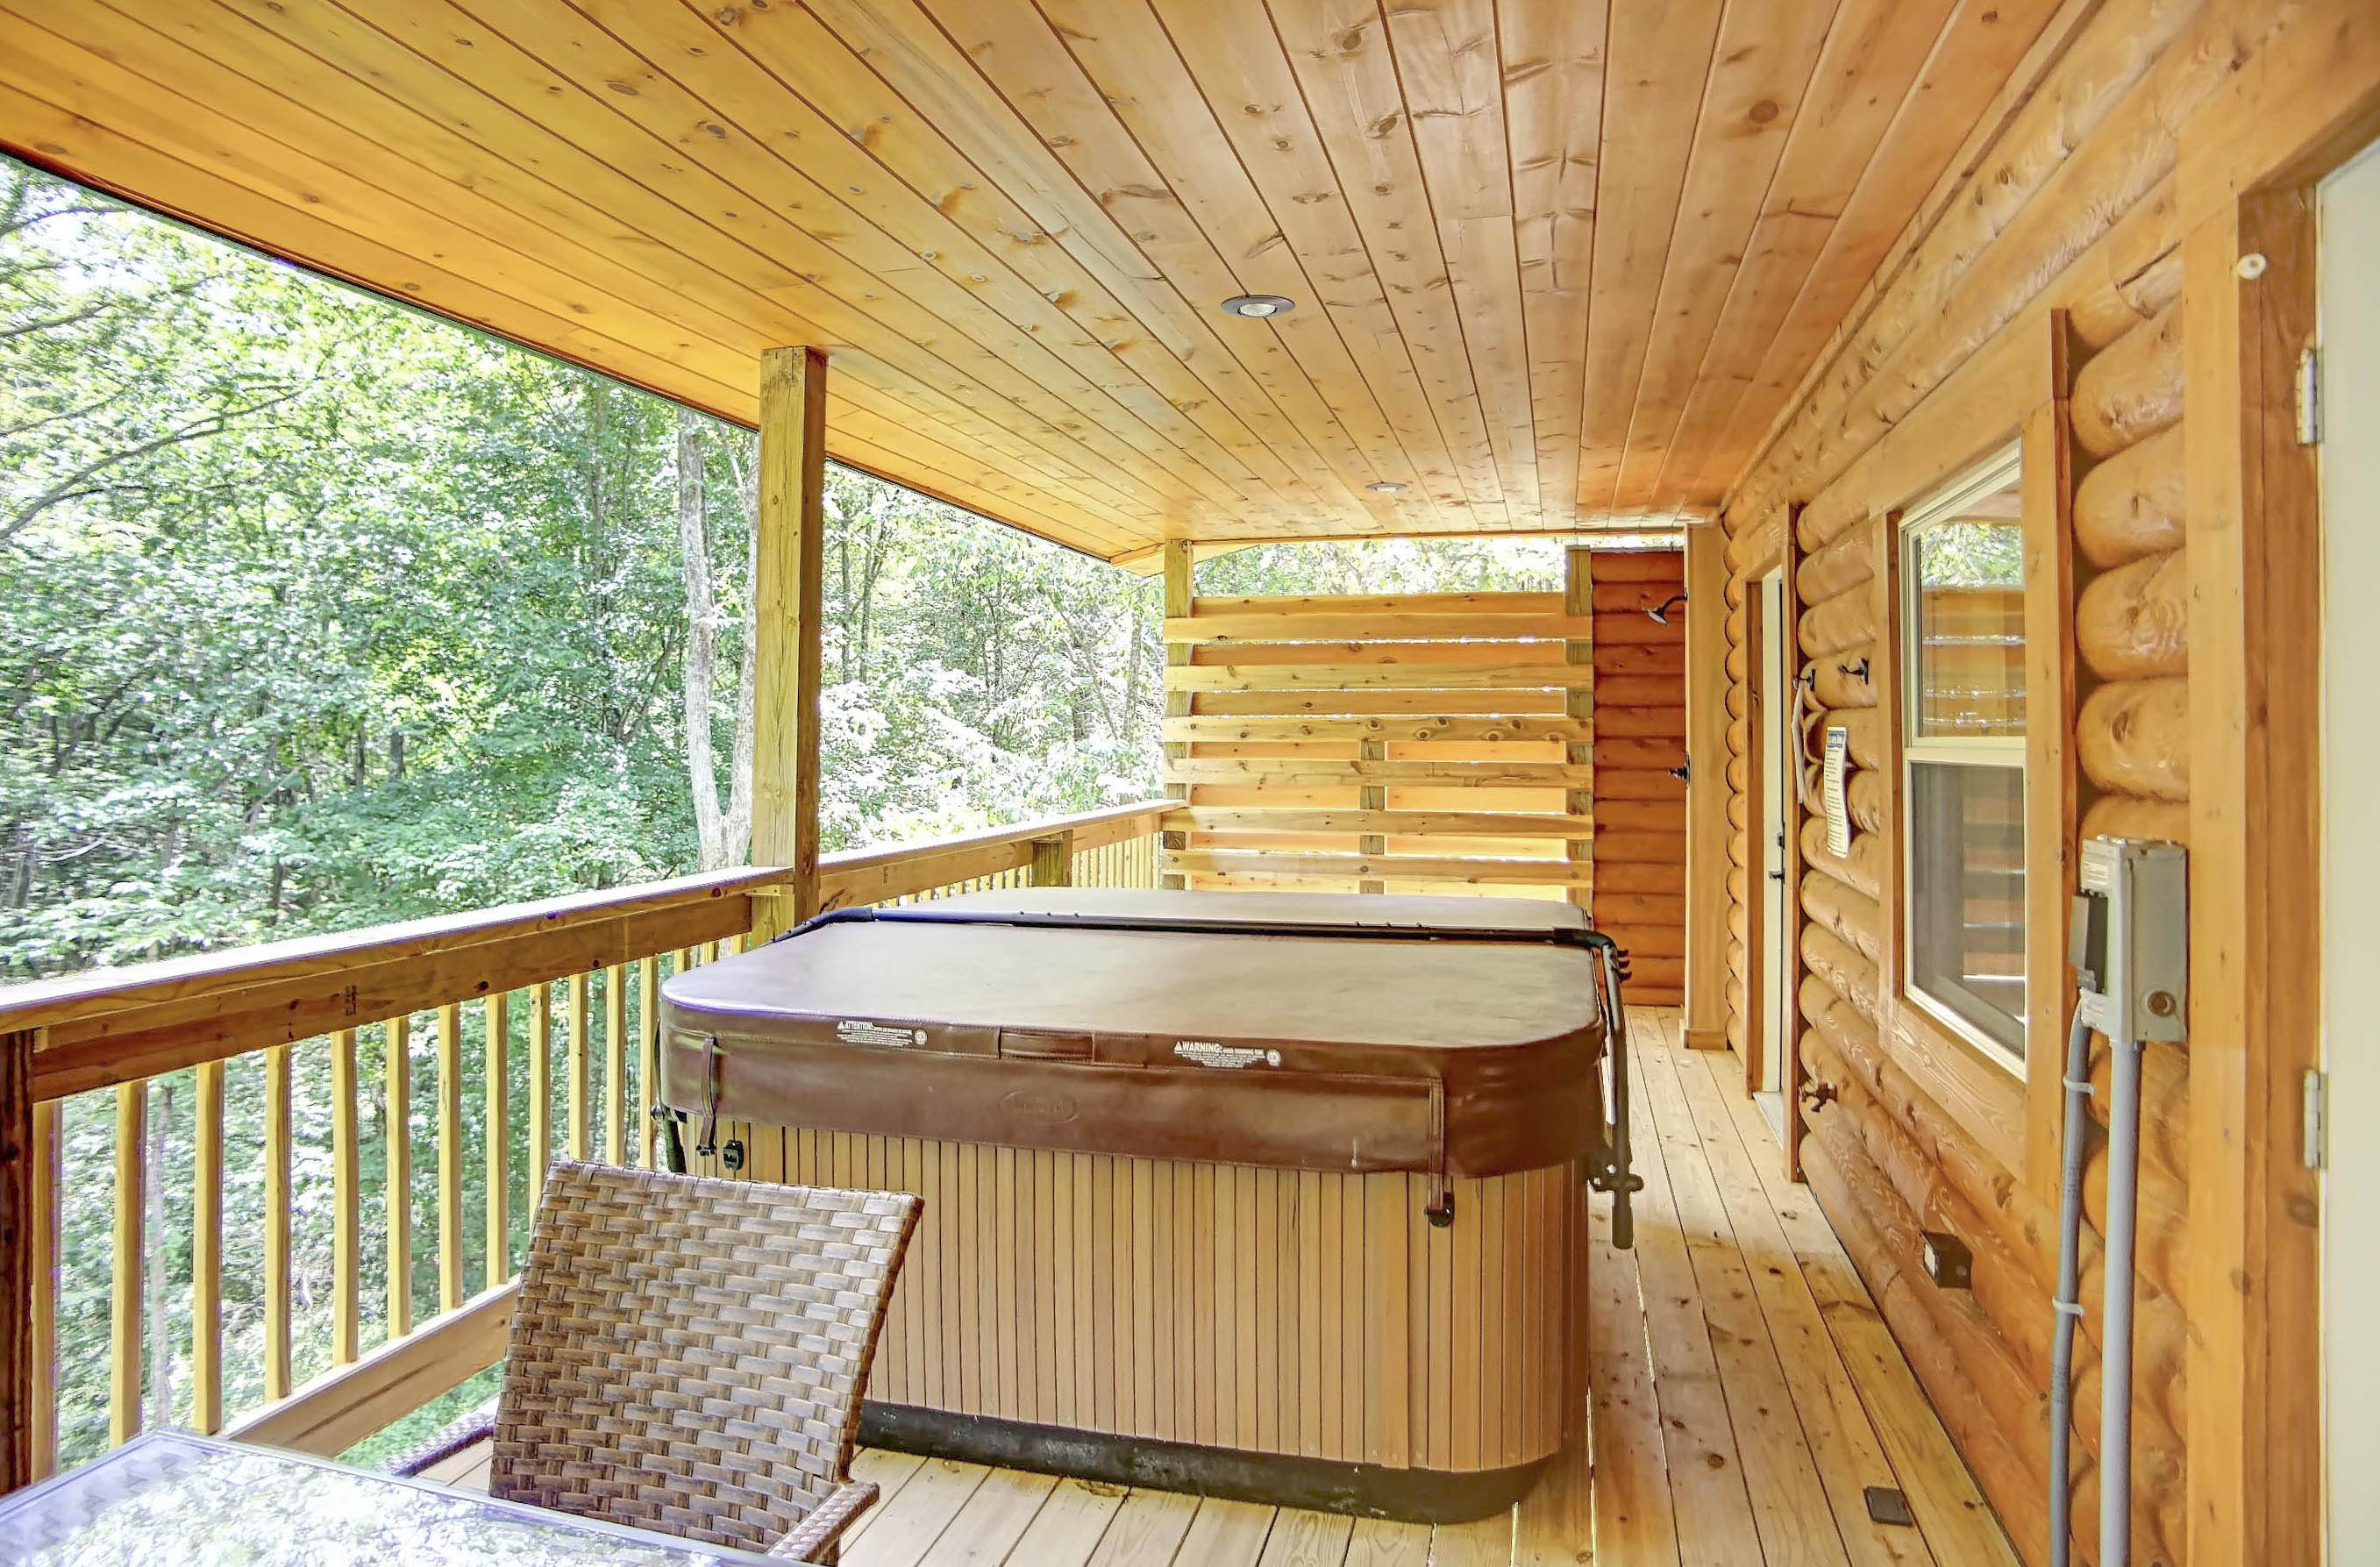 Back Deck - Private back deck with hot tub, seasonal outdoor shower and seating